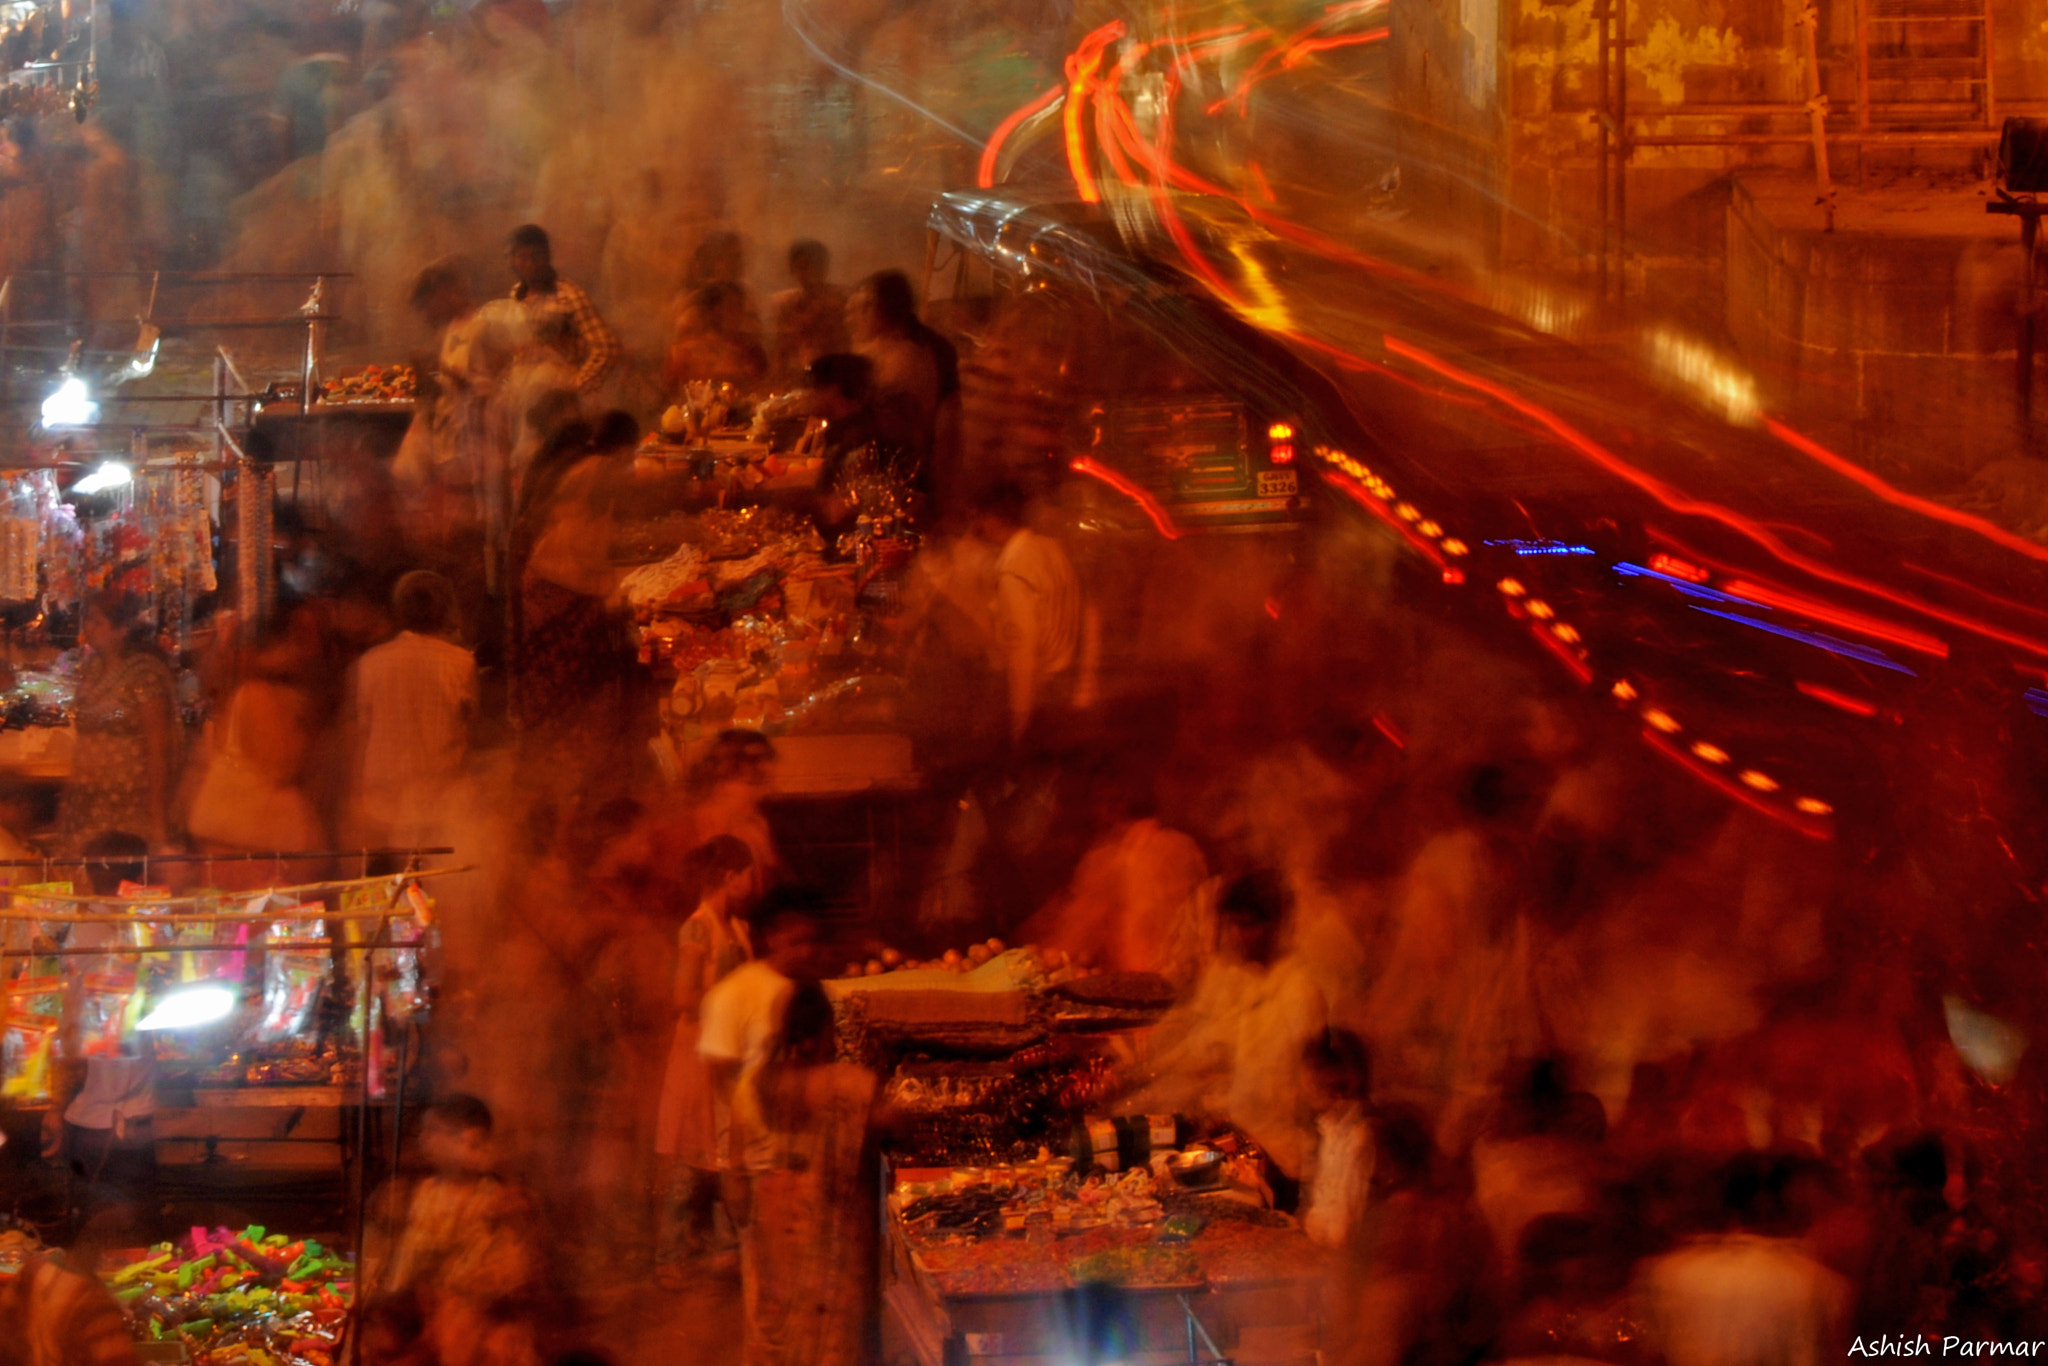 Photograph The Human Flow by Ashish Parmar on 500px